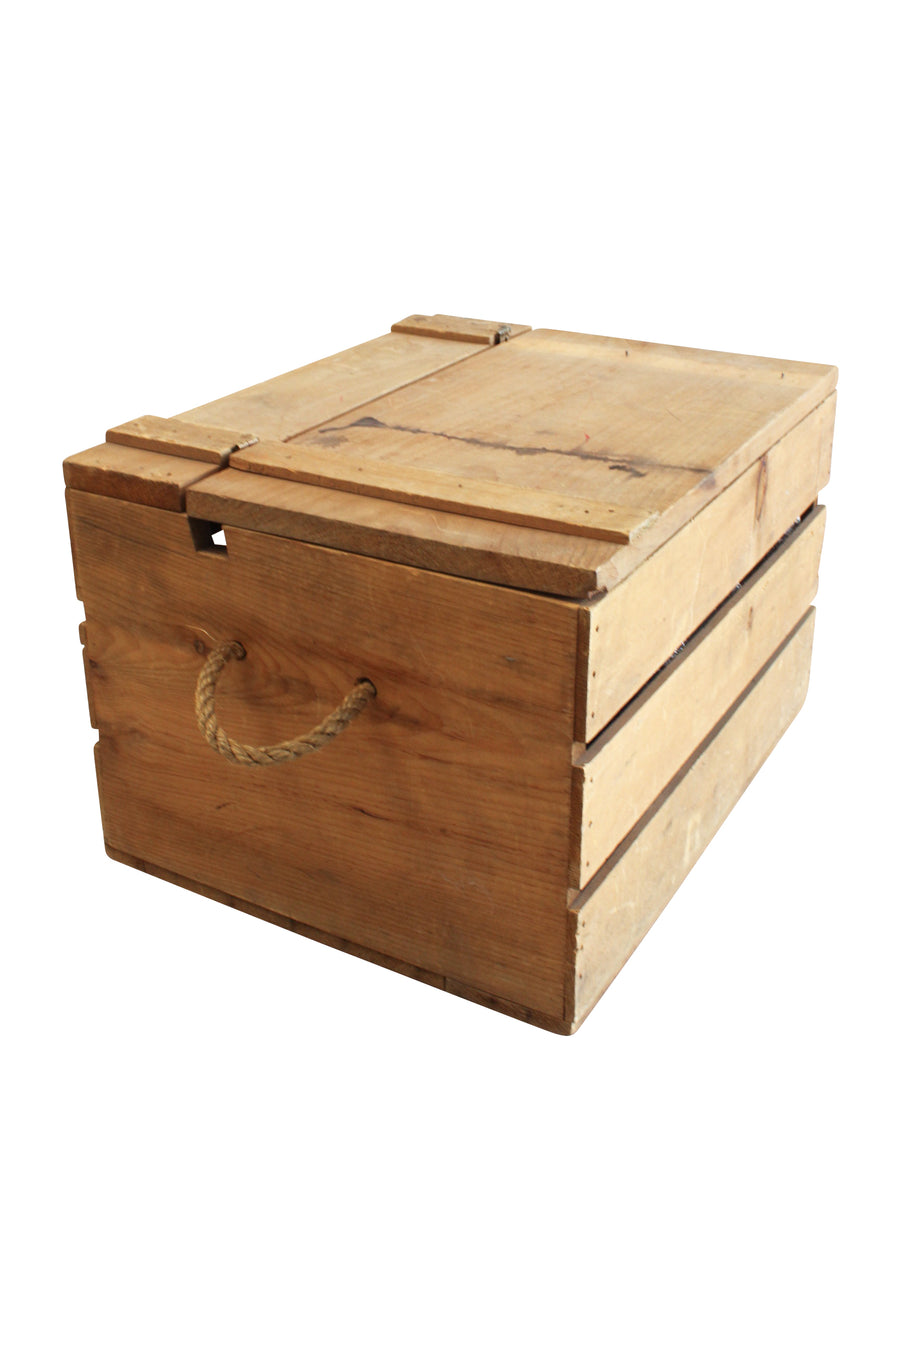 Slotted Crate With Rope Handles